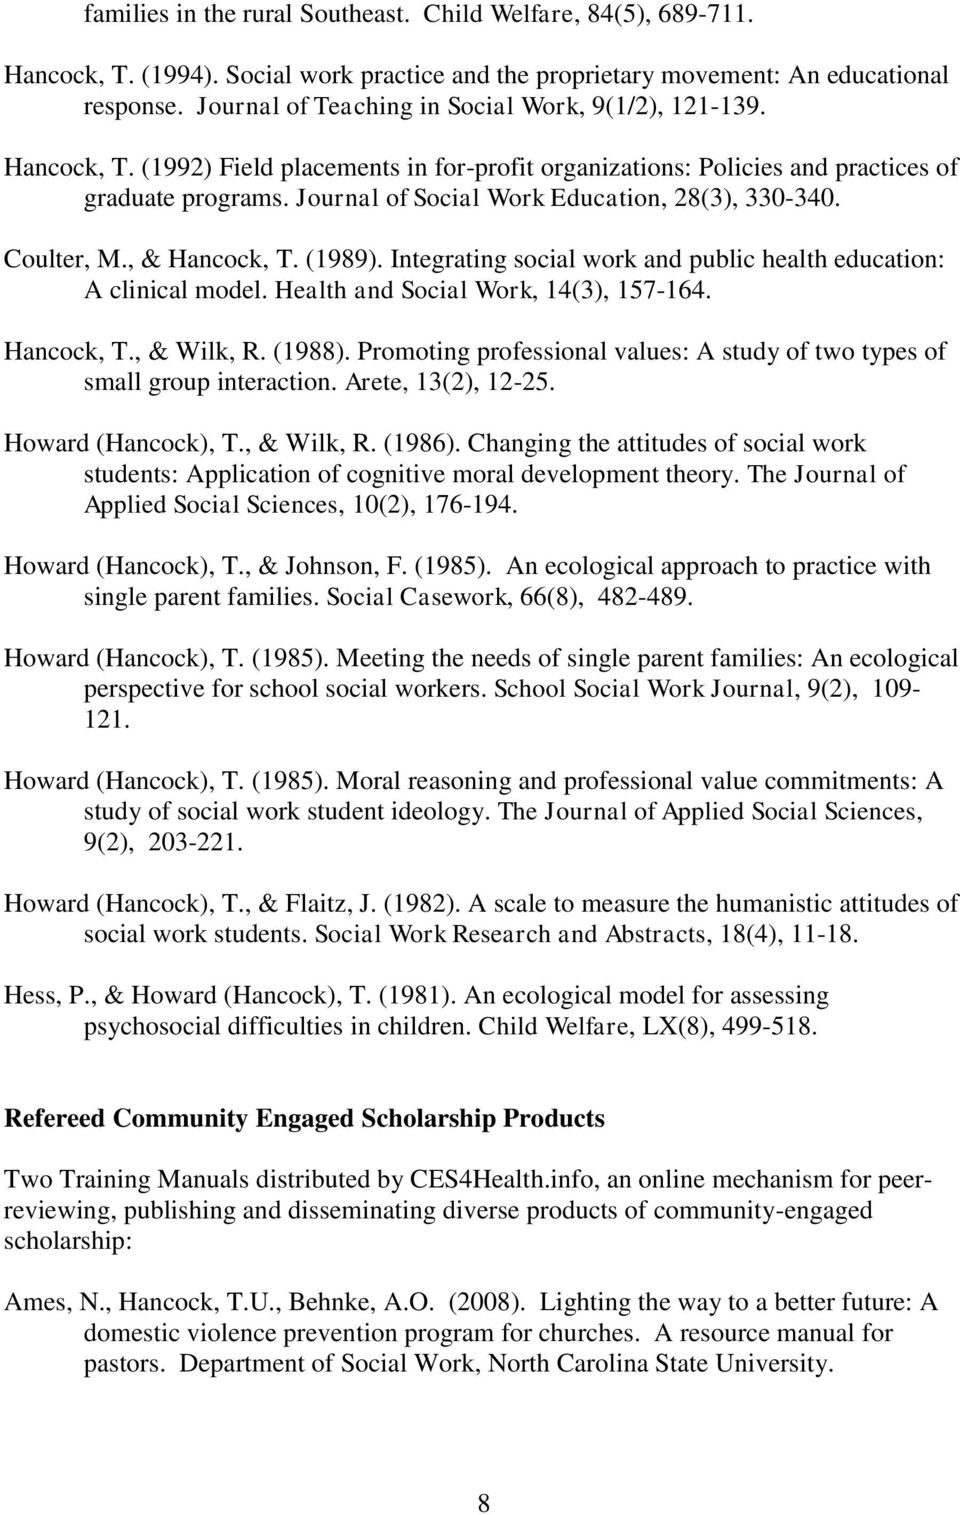 Journal of Social Work Education, 28(3), 330-340. Coulter, M., & Hancock, T. (1989). Integrating social work and public health education: A clinical model. Health and Social Work, 14(3), 157-164.